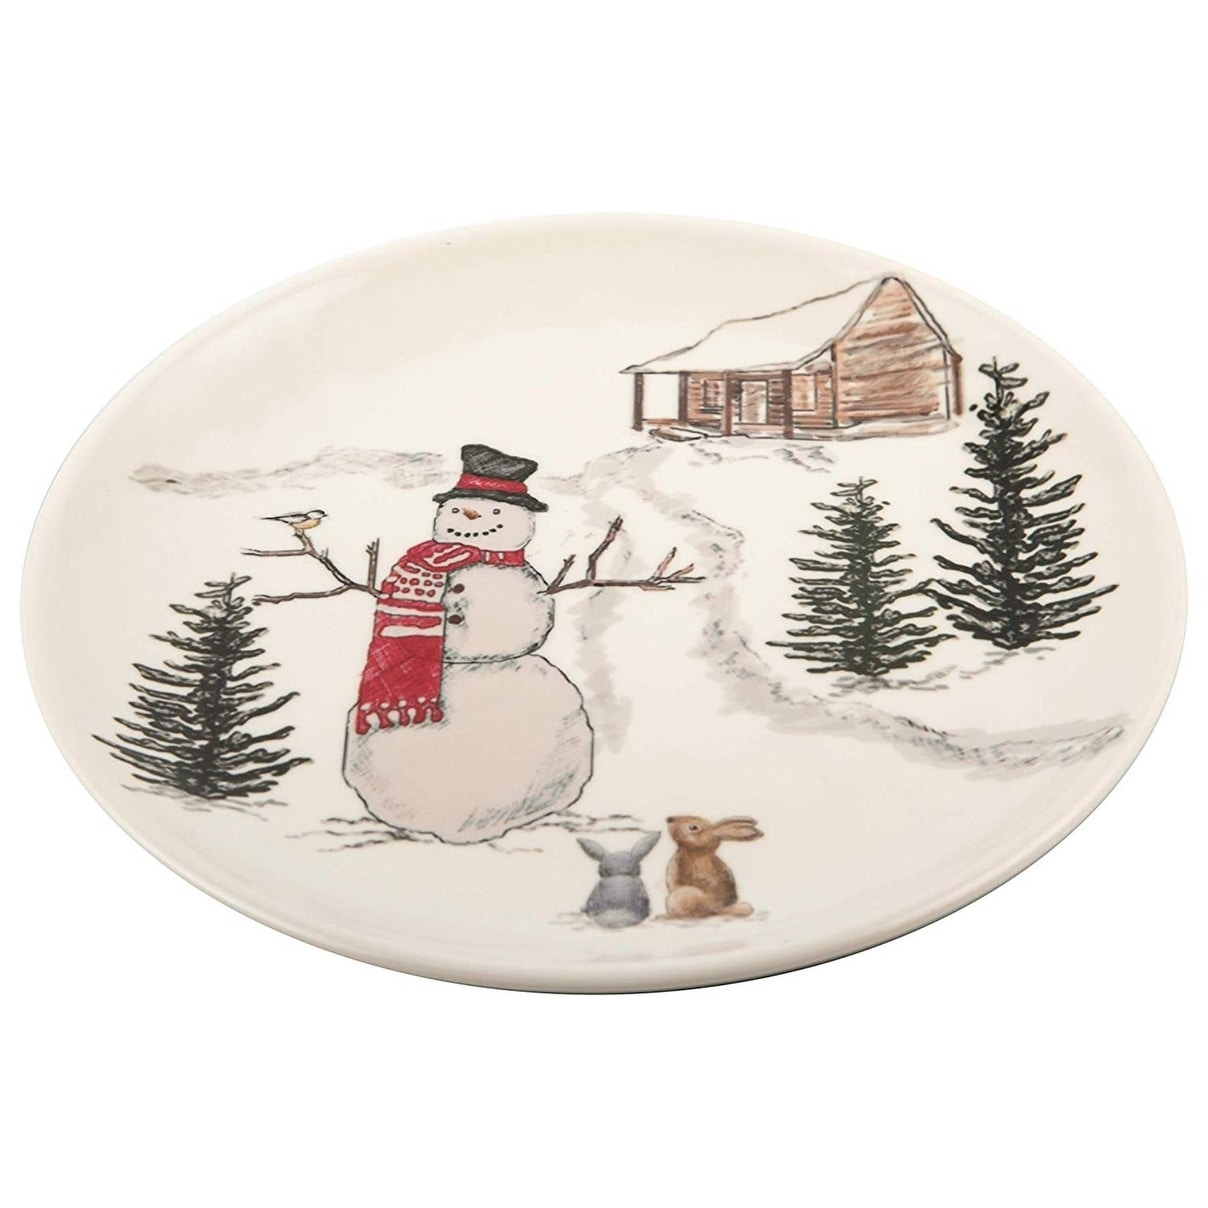 Melamine Christmas Platters.Melange 6 Piece 100 Melamine Salad Plates Christmas Collection Snowman Shatter Proof And Chip Resistant 10 5 White